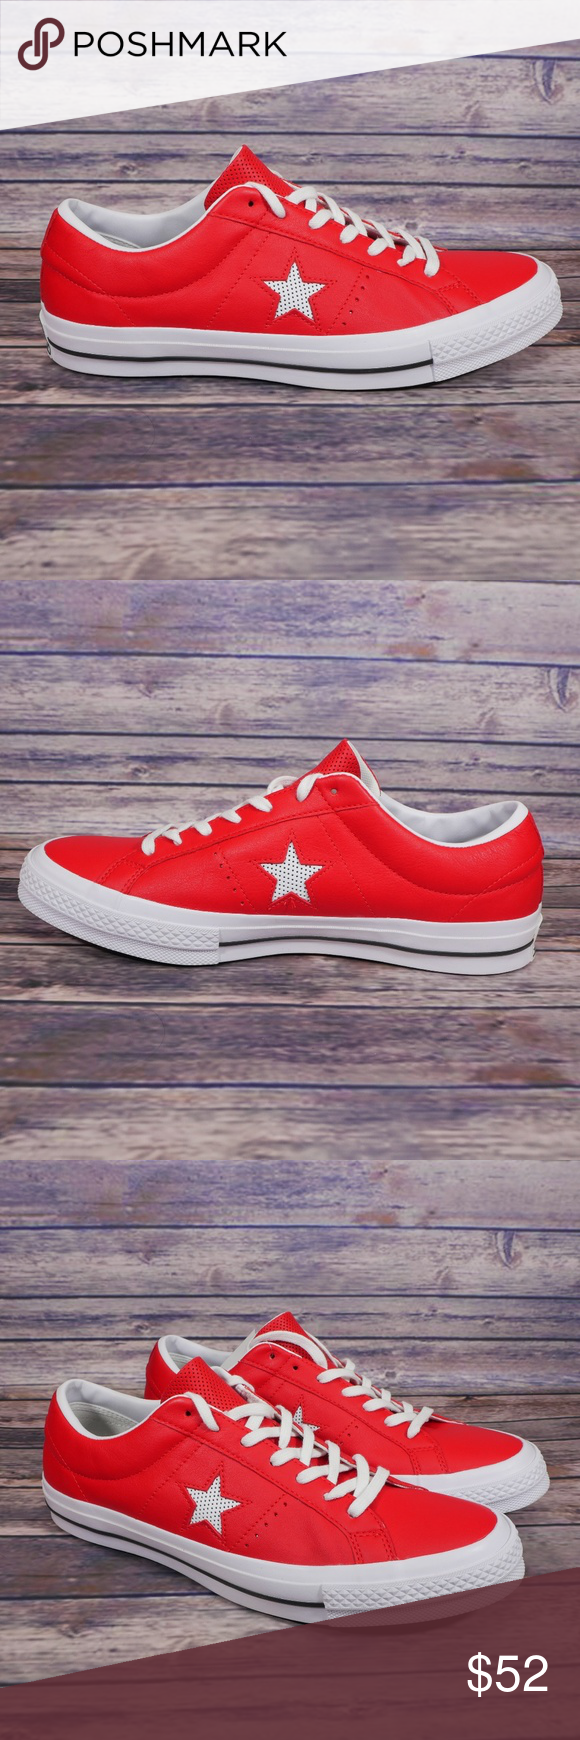 ca68f55f410 NEW Converse One Star Leather Ox Red Sneaker Converse One Star Red Leather  Ox Sneaker 158466C. Mens sizes 11.5 M and 12 M. New without box. Never worn.